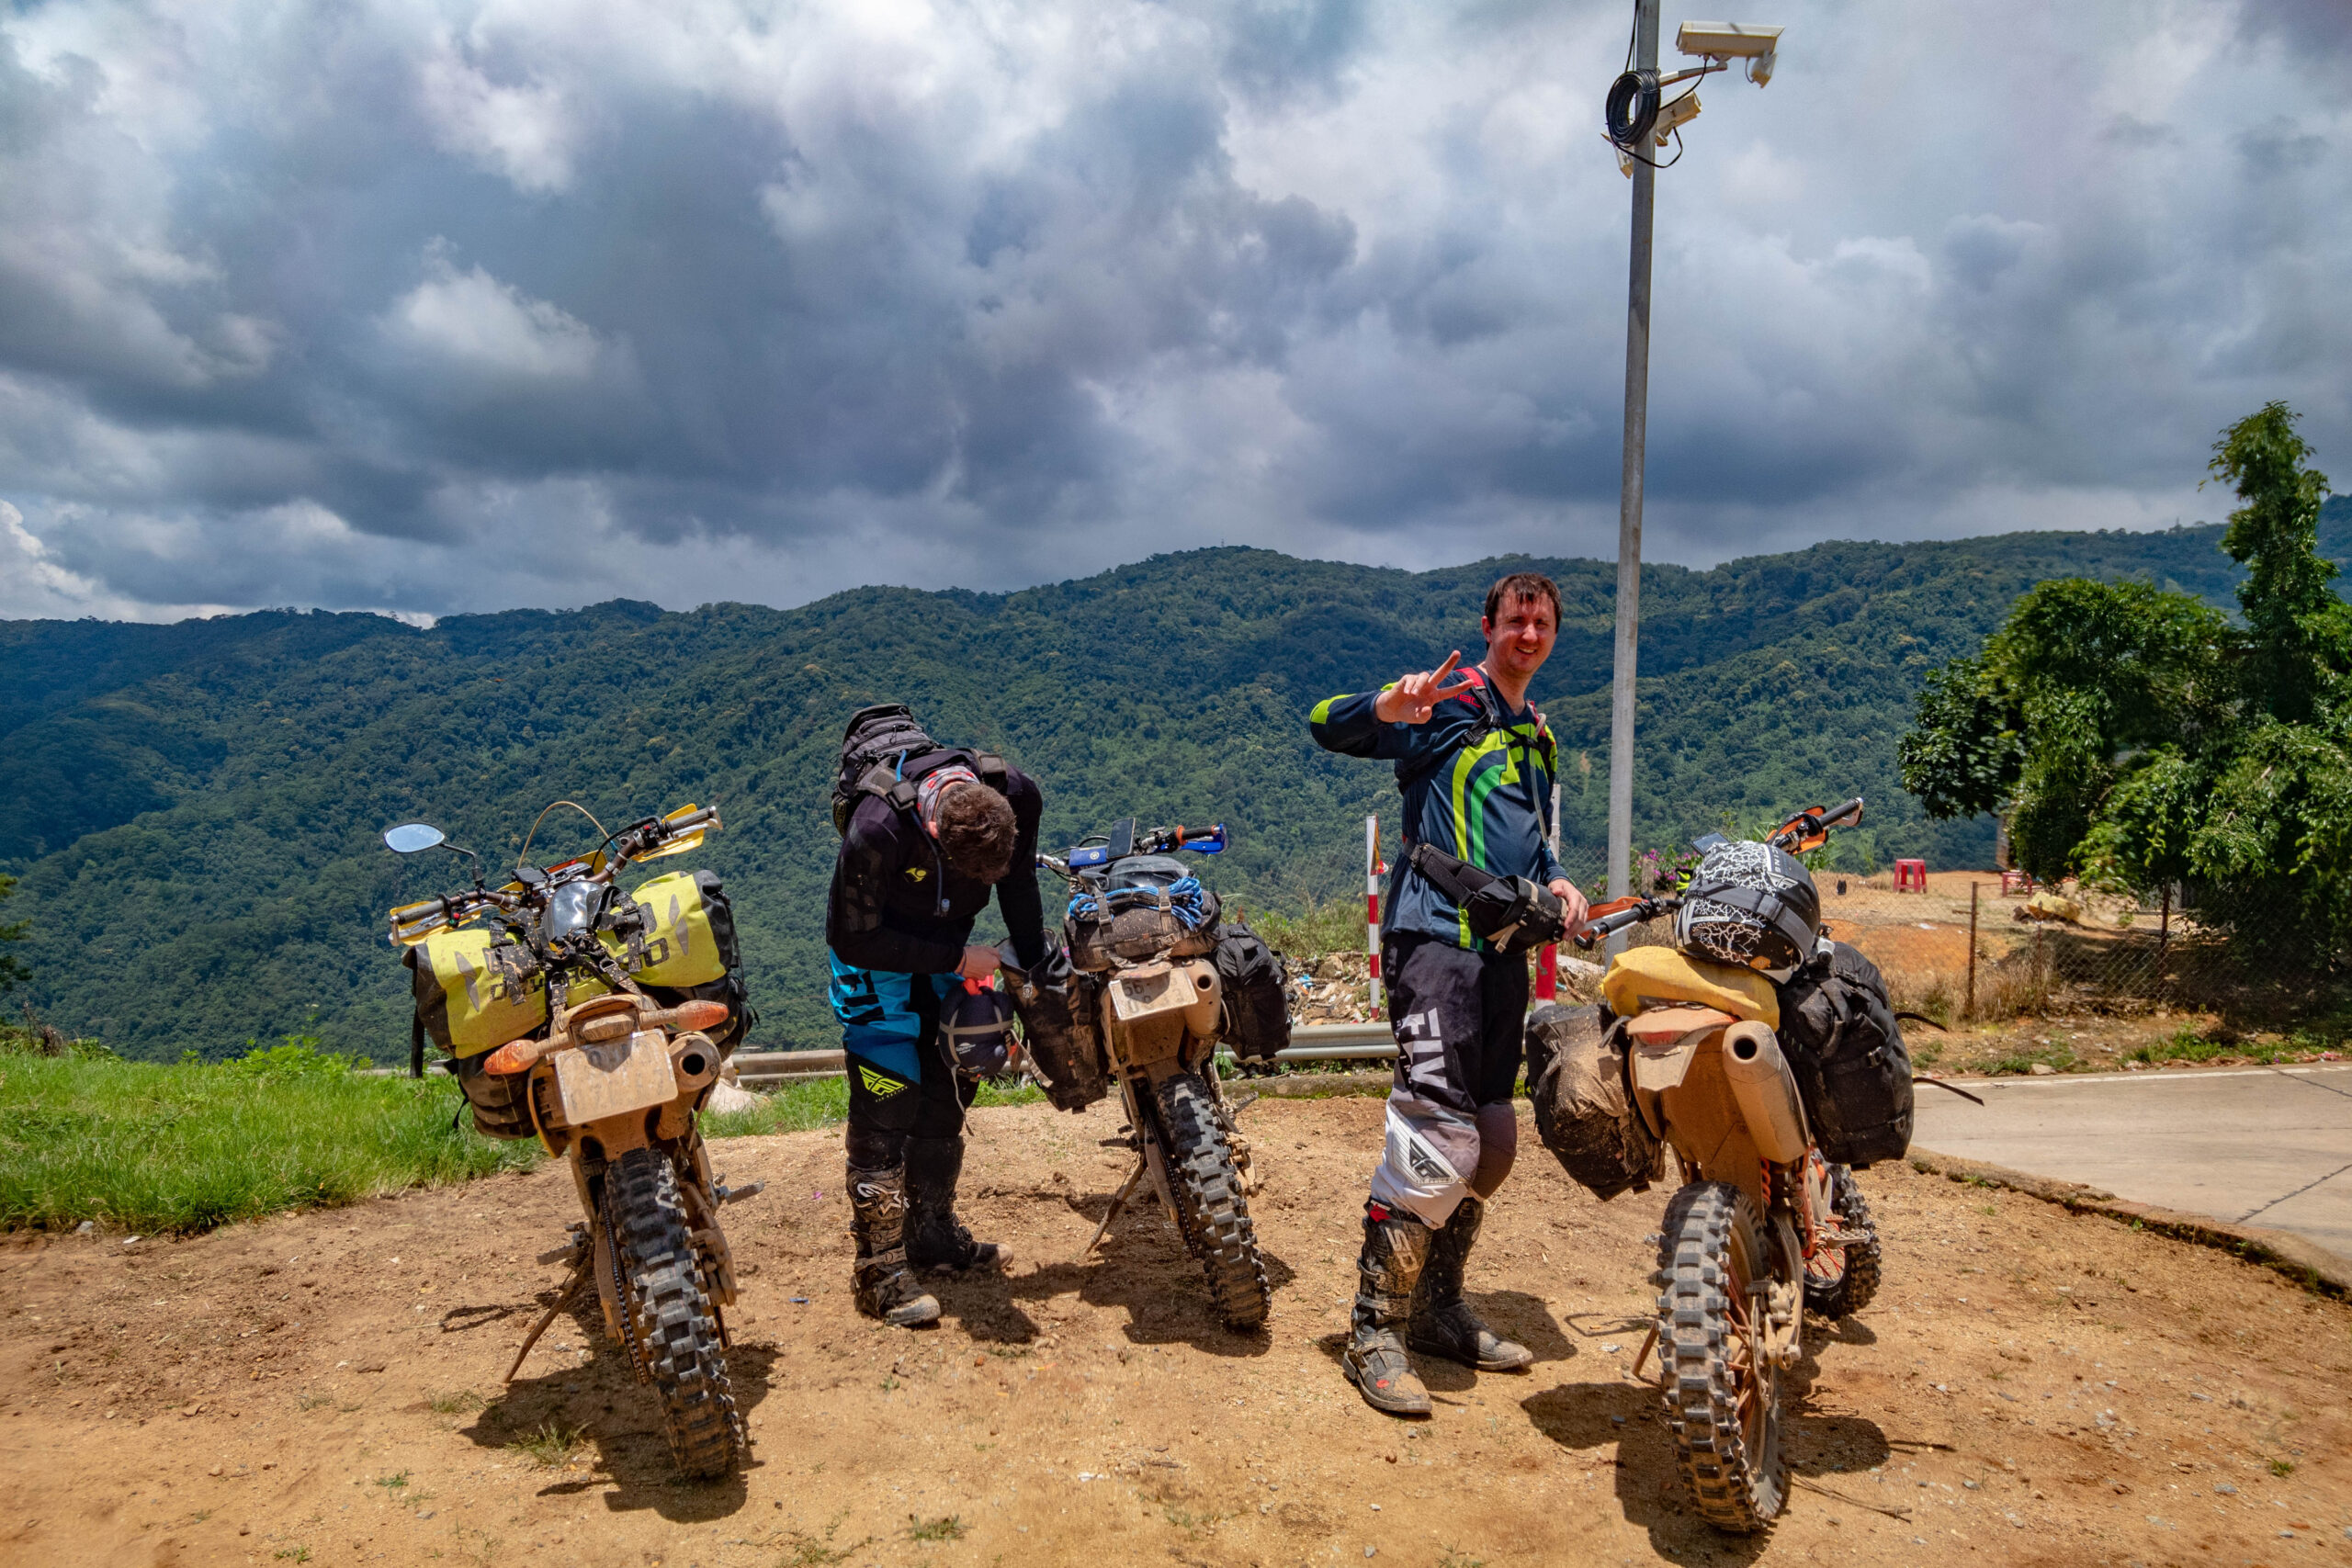 kriega bags on enduro bikes